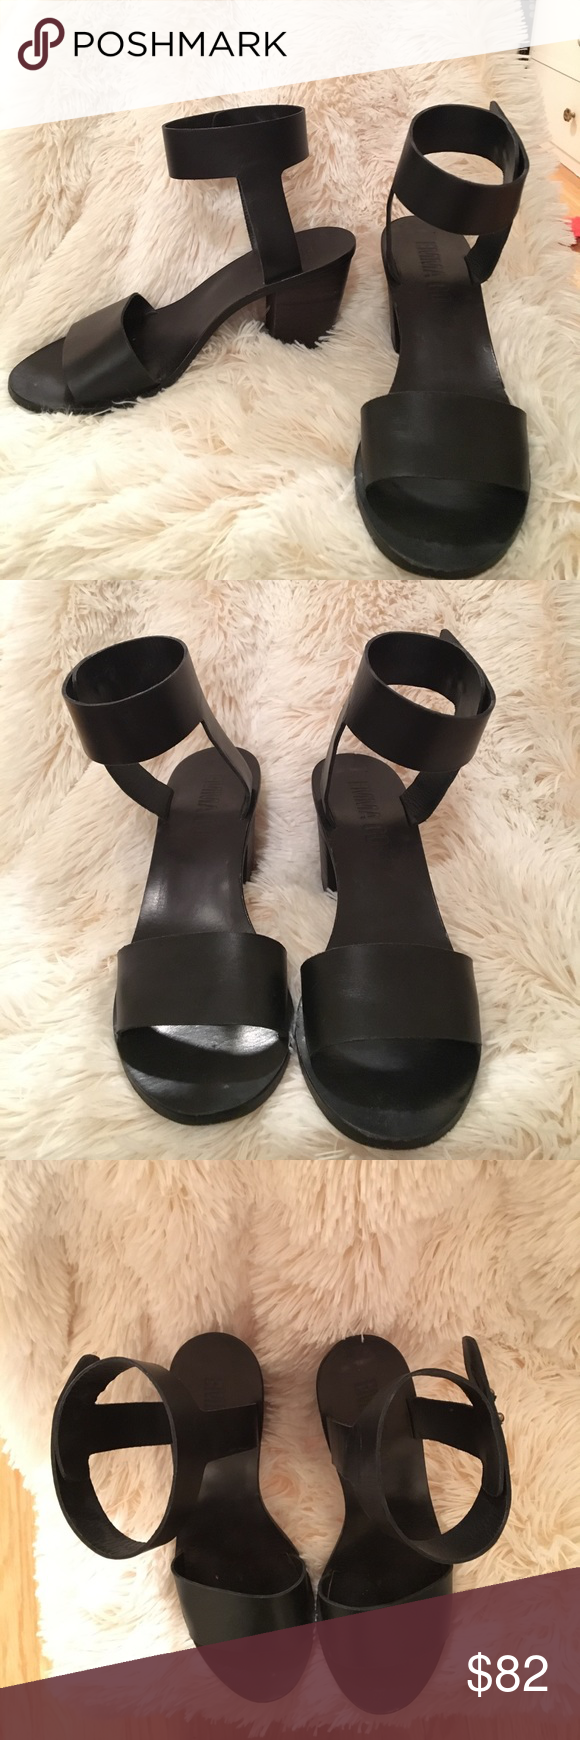 Emma Go black sandal heels sz38 ankle closure Emma Go sandals with small-medium heel. Ankle closure sz 38. Brand is from Copenhagen, see image for website. Only worn 3 times total. emma go Shoes Sandals